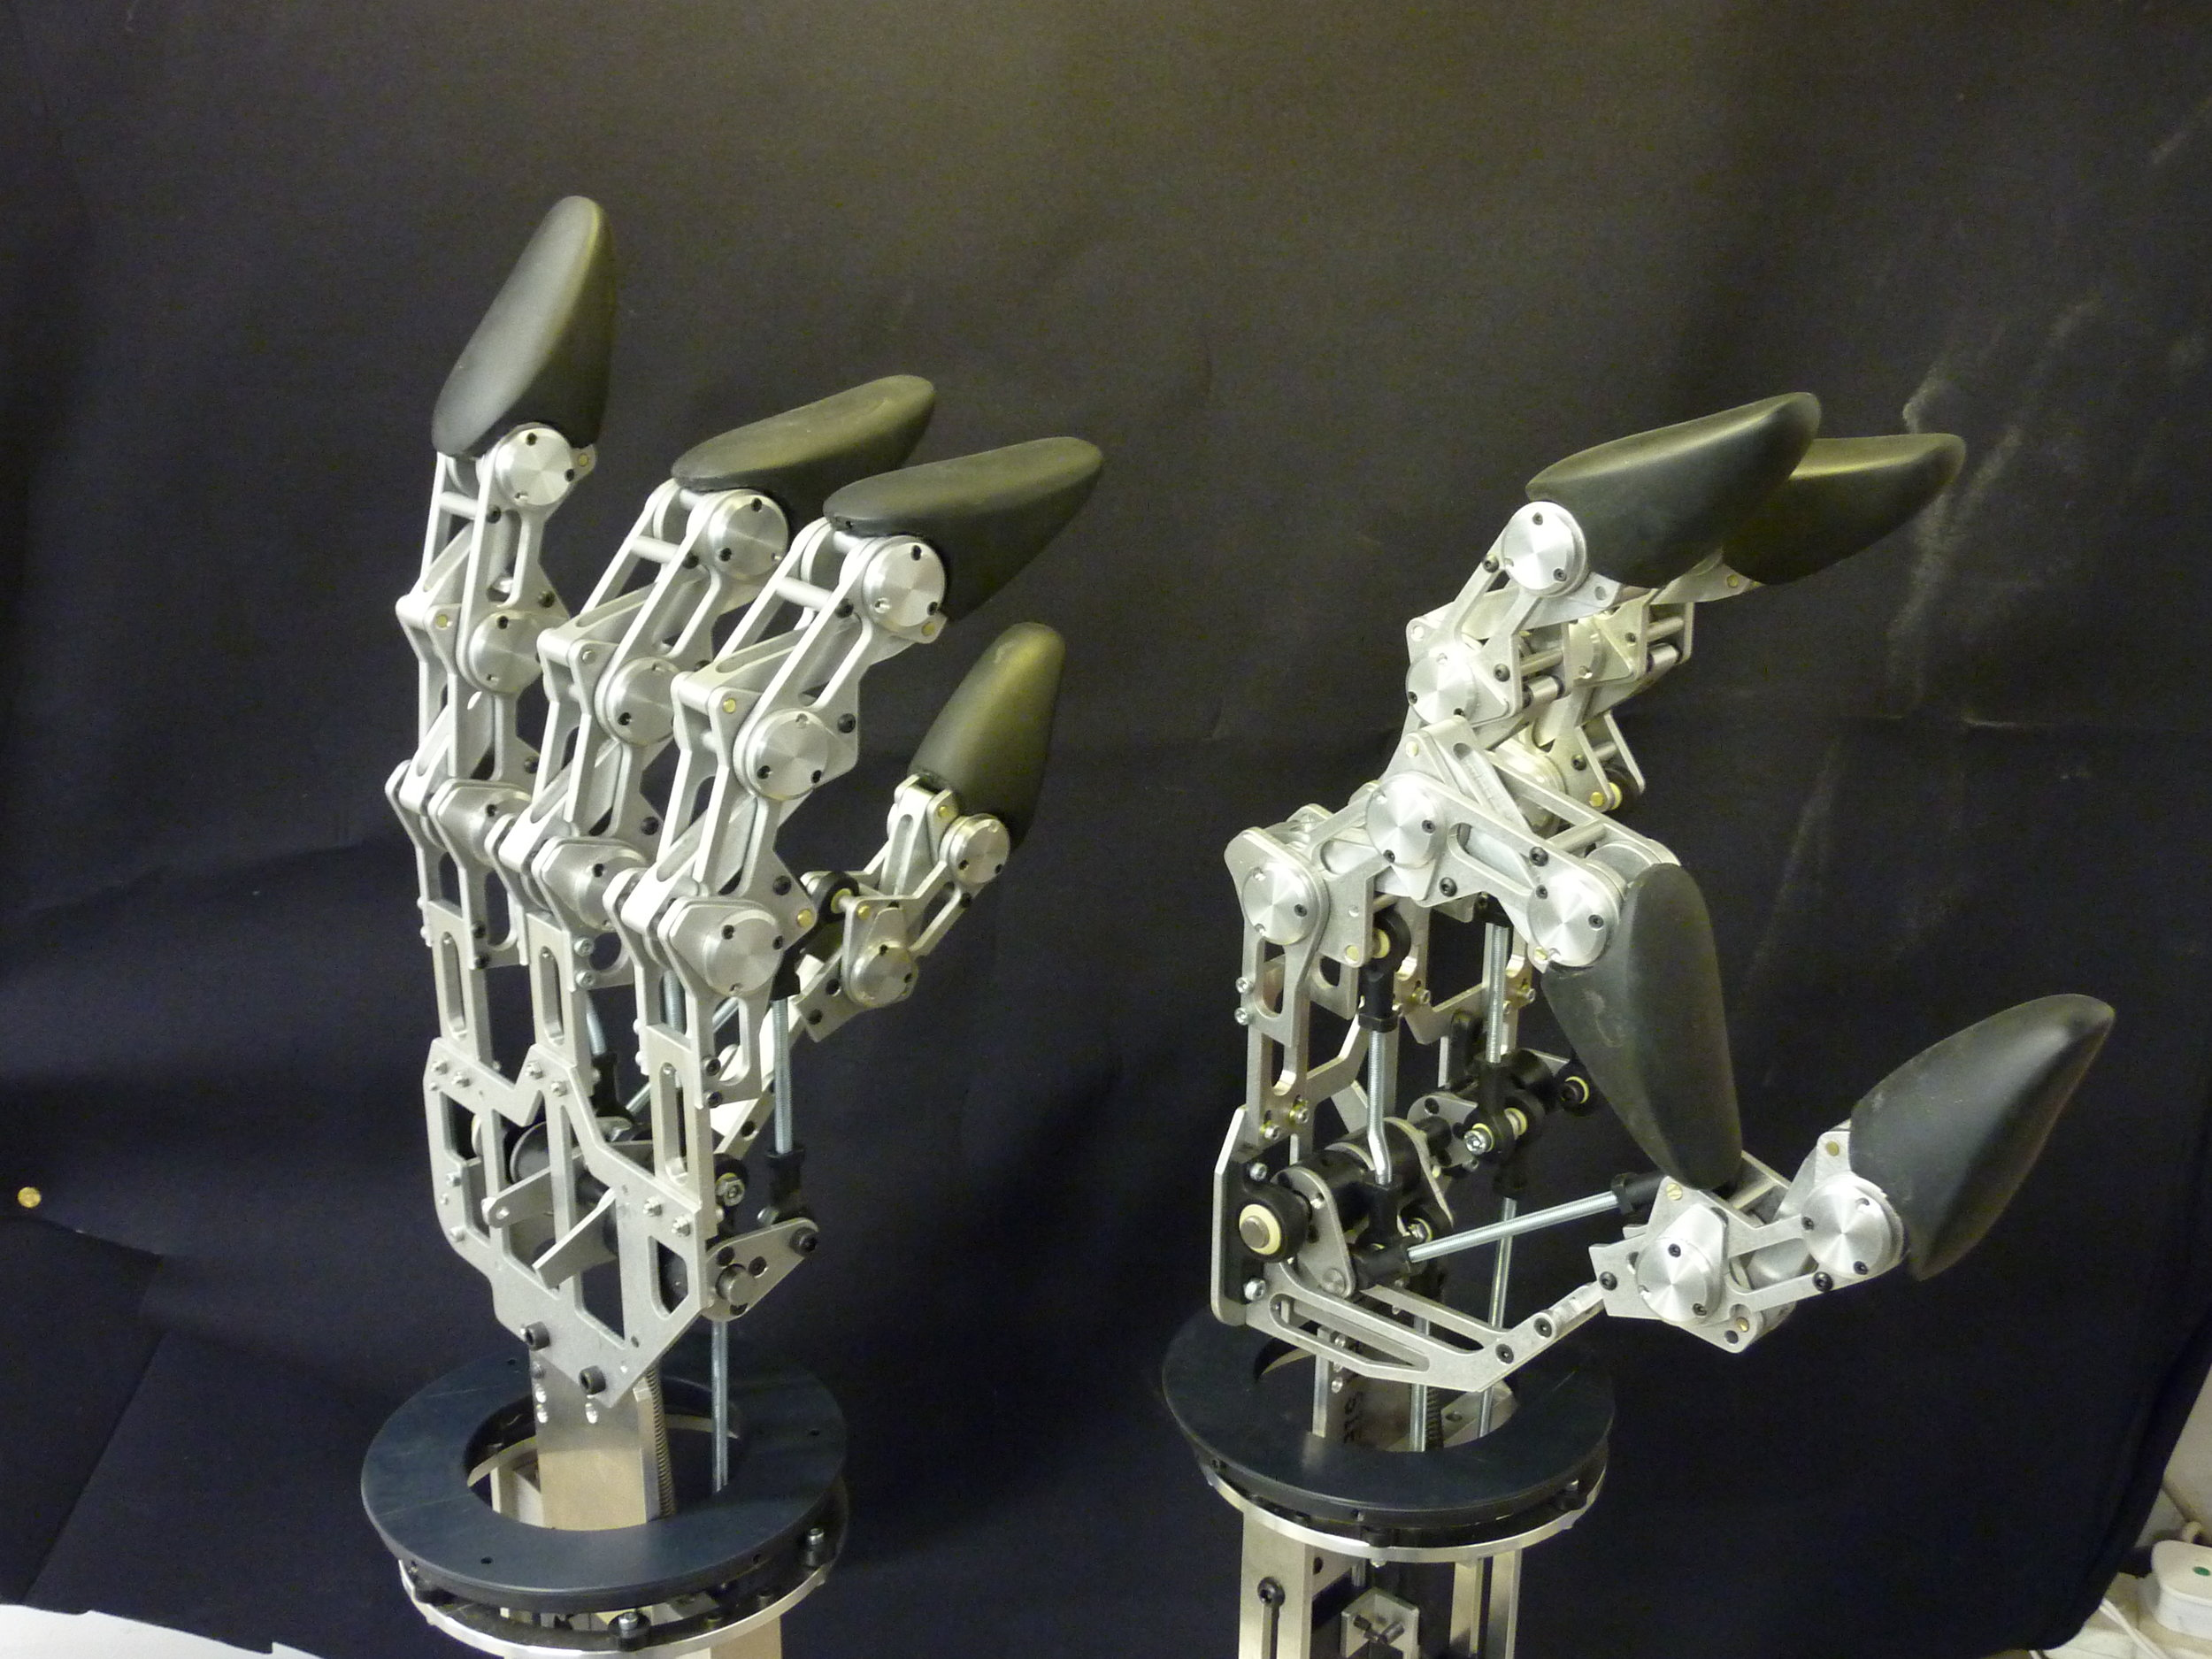 Mission 2110. Animatronic hands